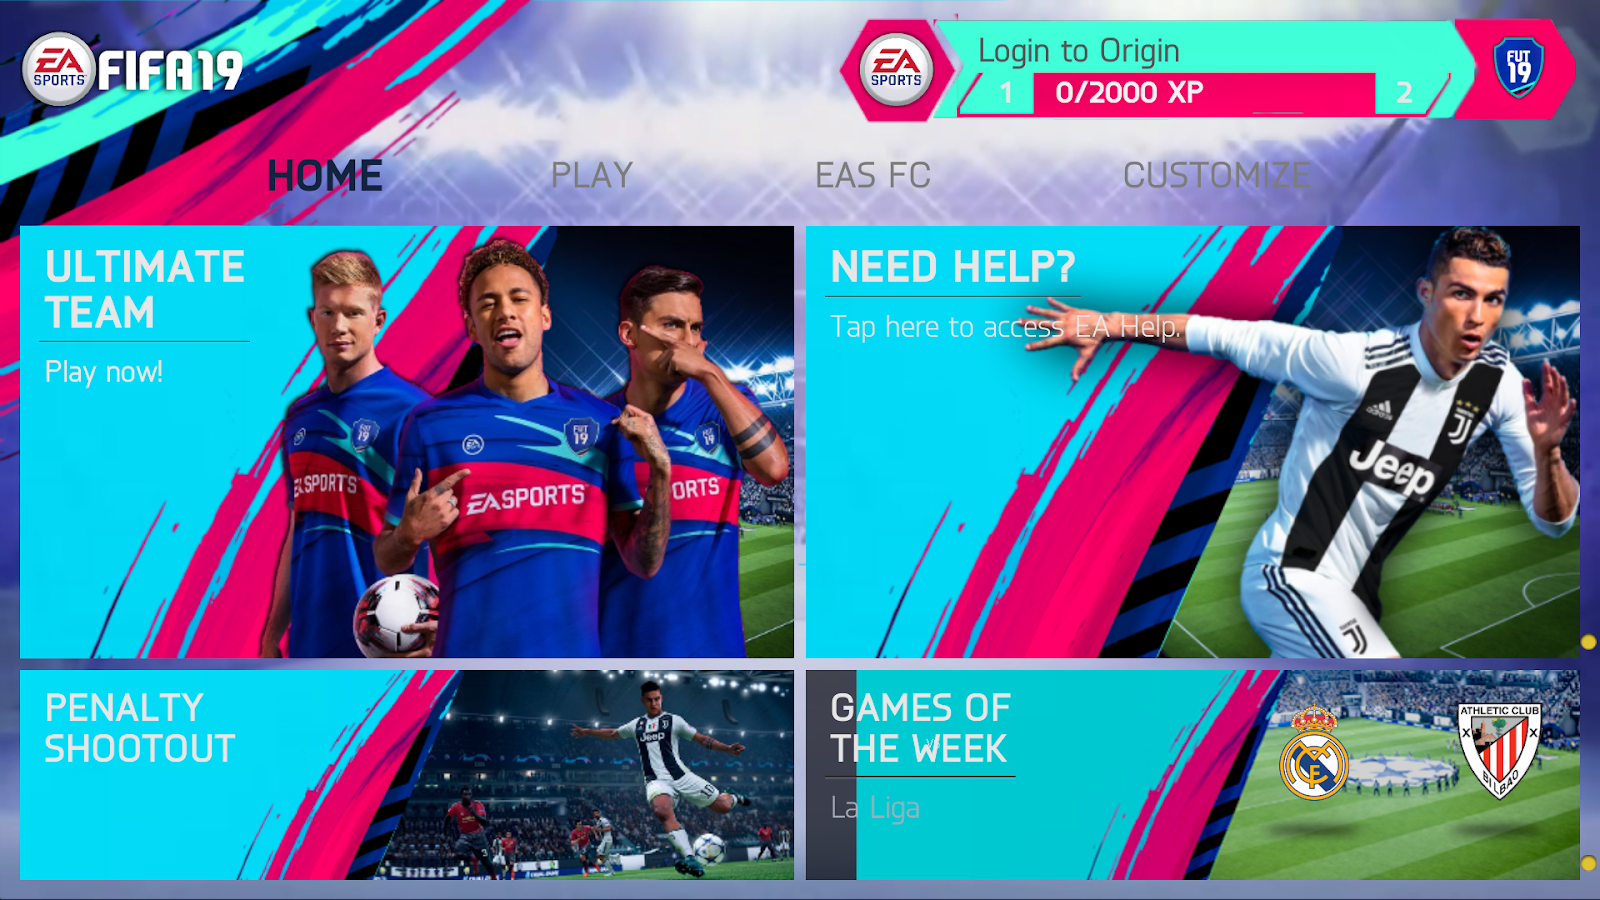 Download Countdown to FIFA 19 latest 1.4 Android APK